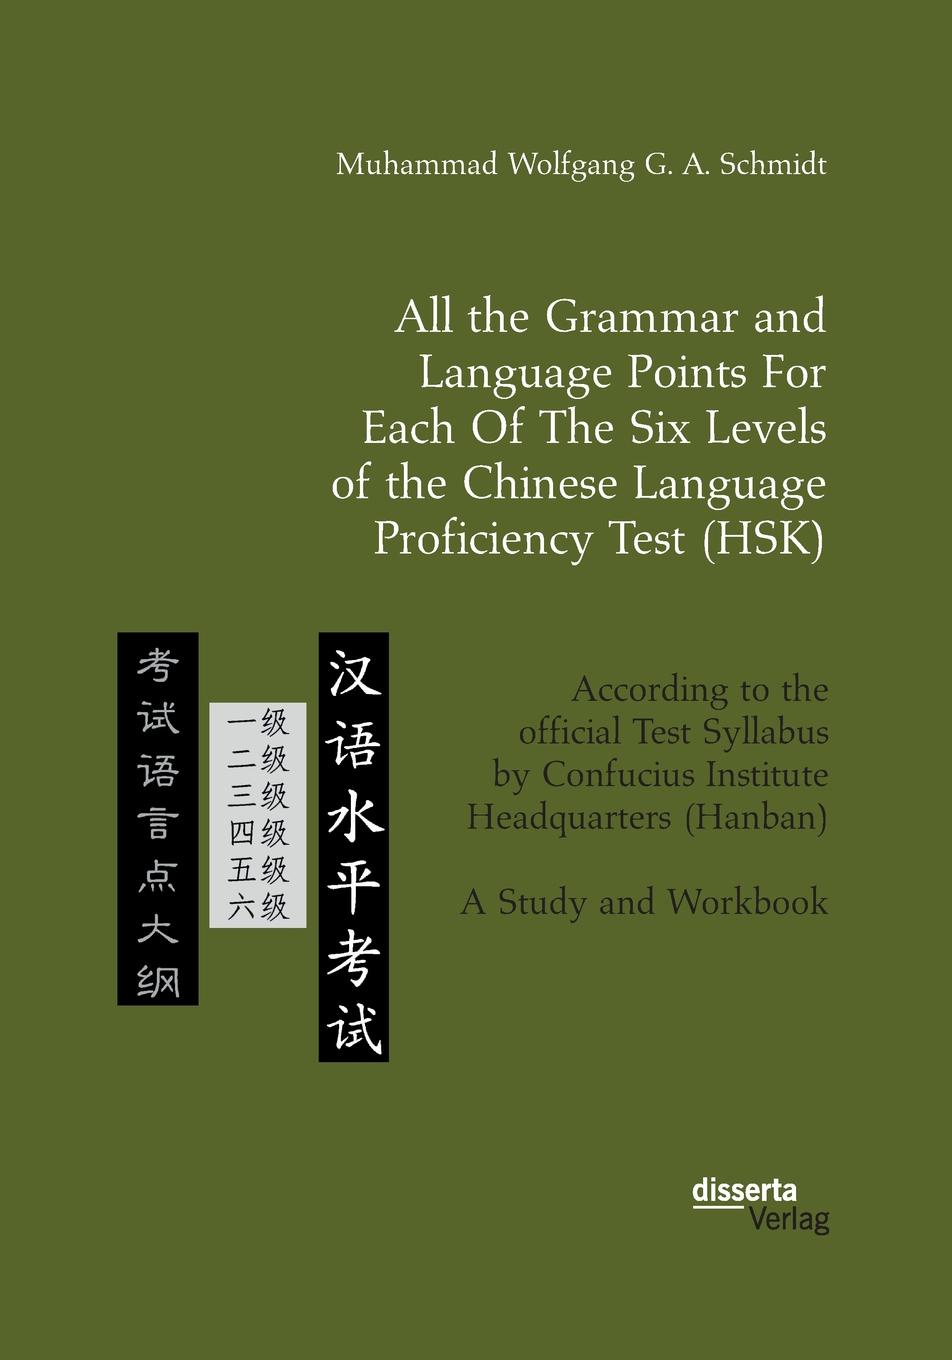 Muhammad Wolfgang G. A. Schmidt All the Grammar and Language Points For Each Of The Six Levels of the Chinese Language Proficiency Test (HSK) the japanese language proficiency test n2 mock test 2 тренировочные тесты jlpt n2 часть 2 cd книга на японском языке